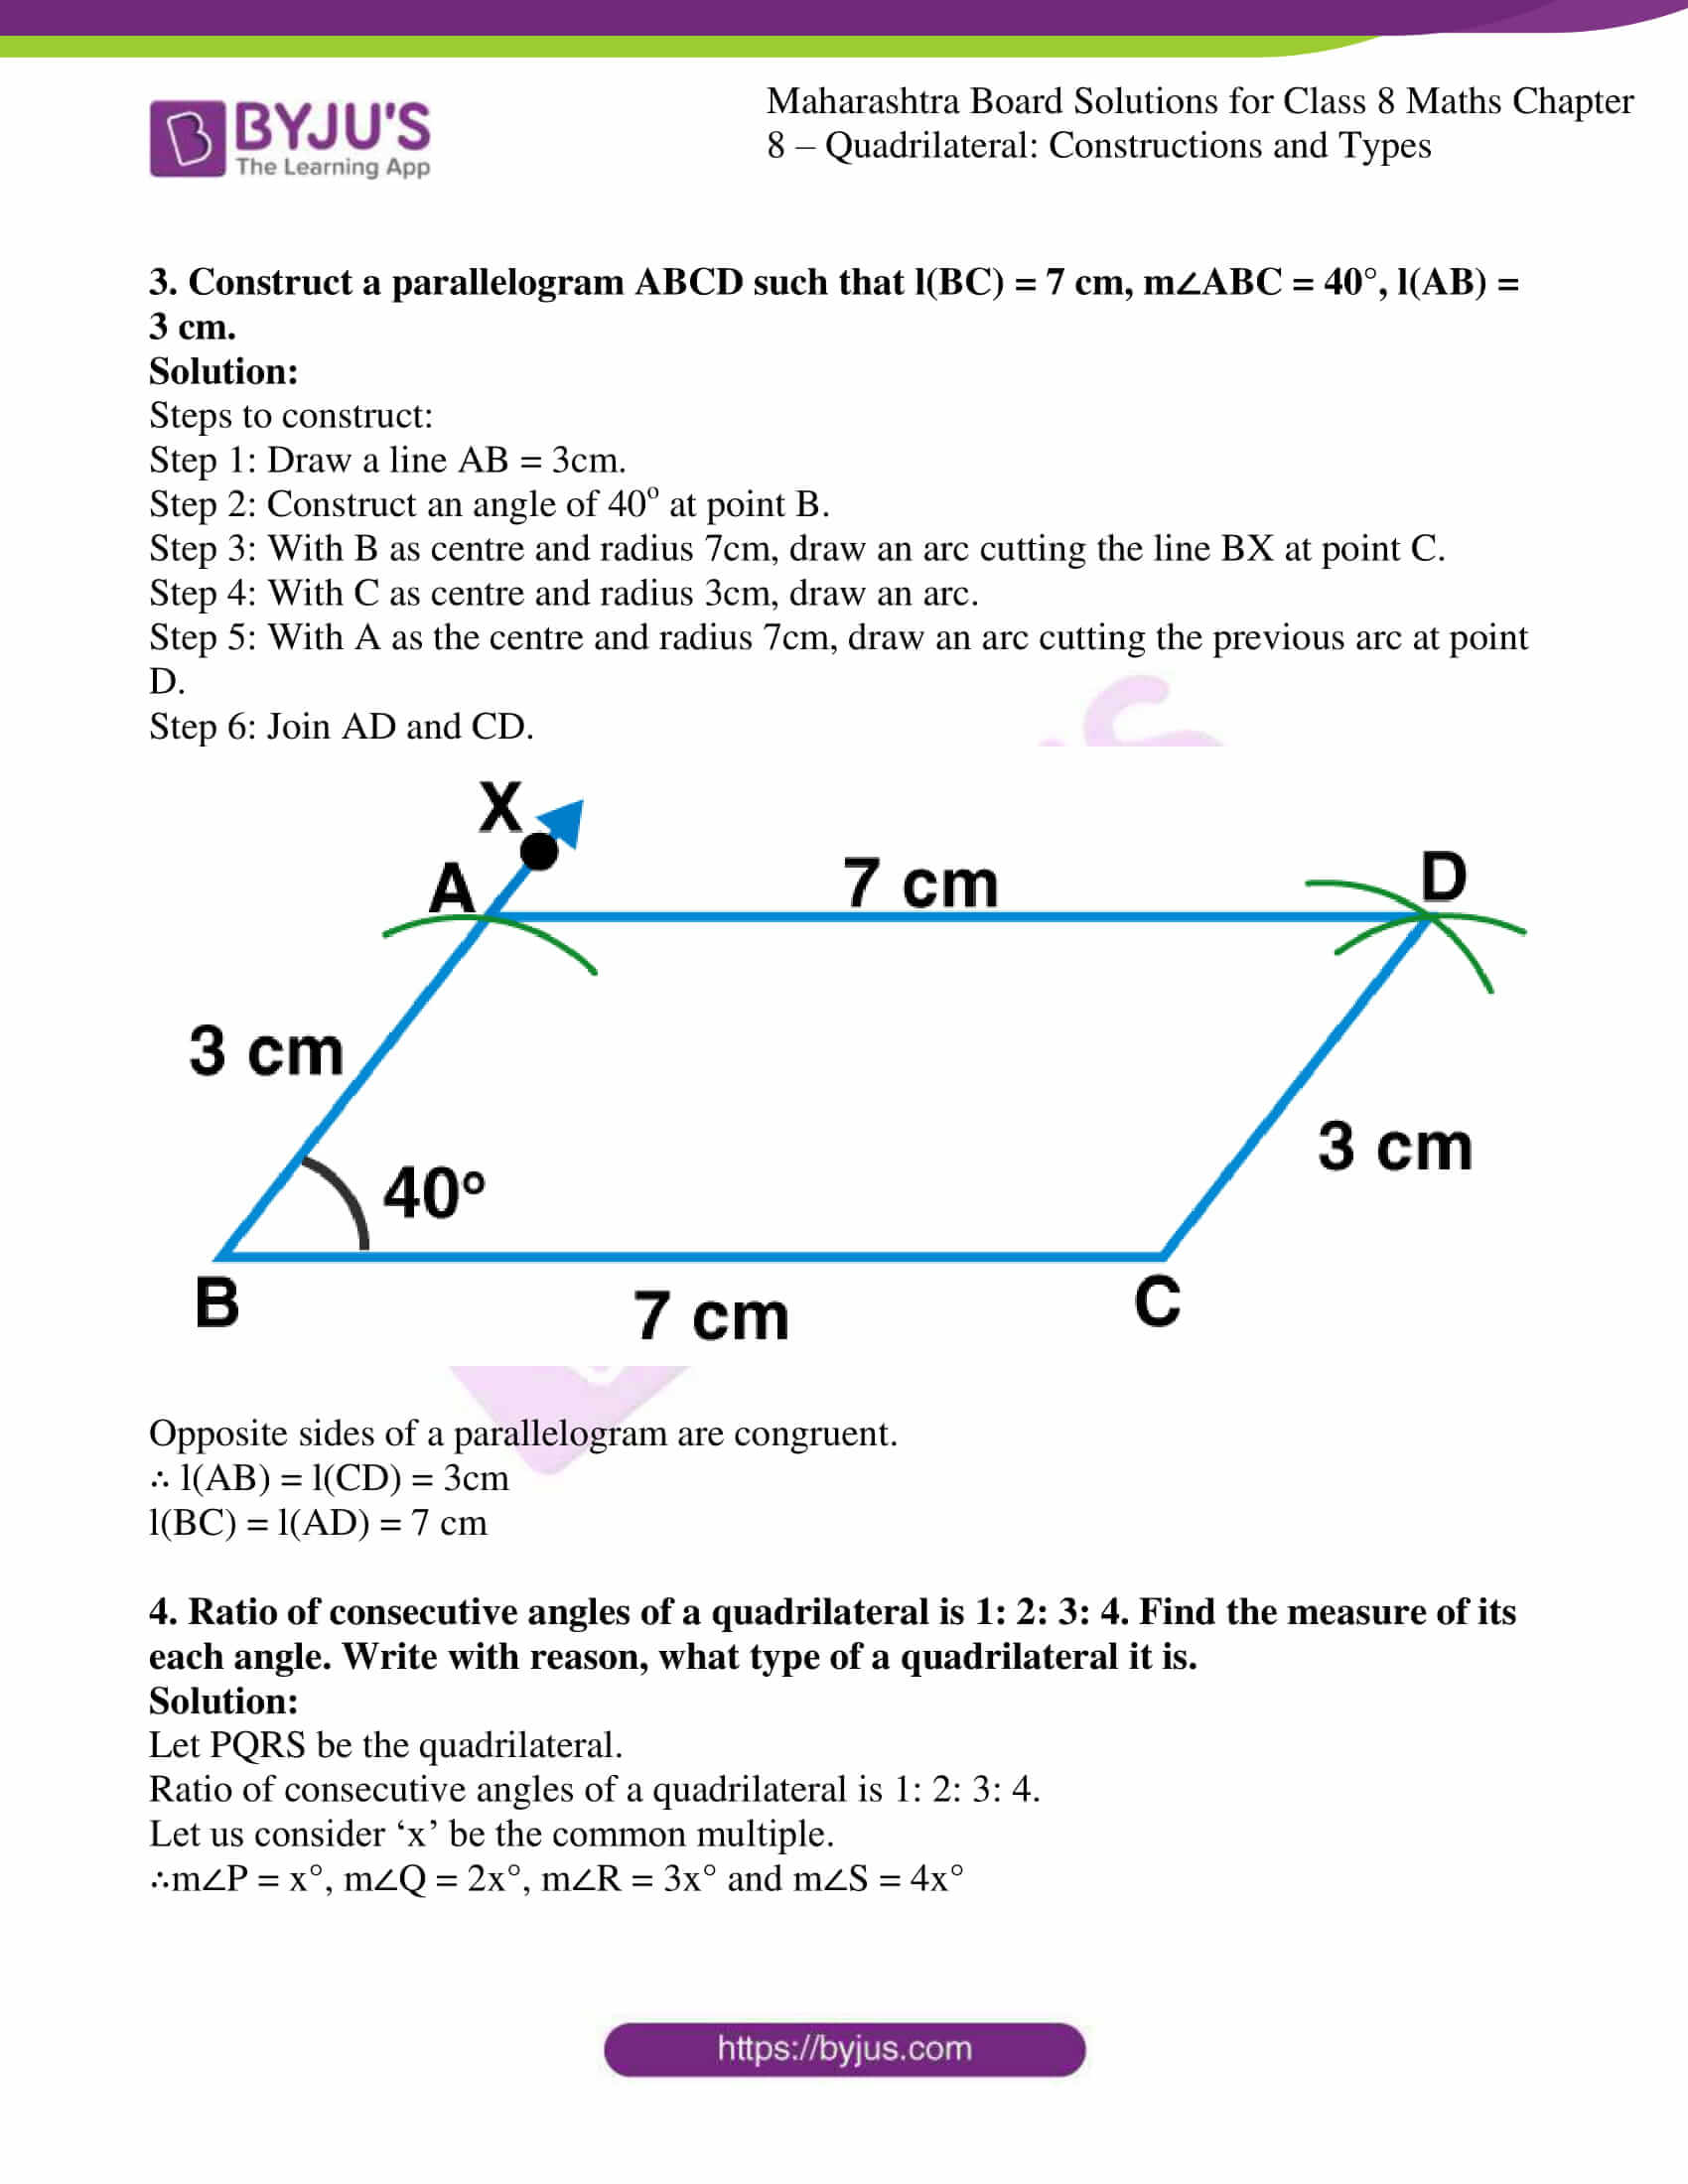 msbshse sol for class 8 maths chapter 8 15